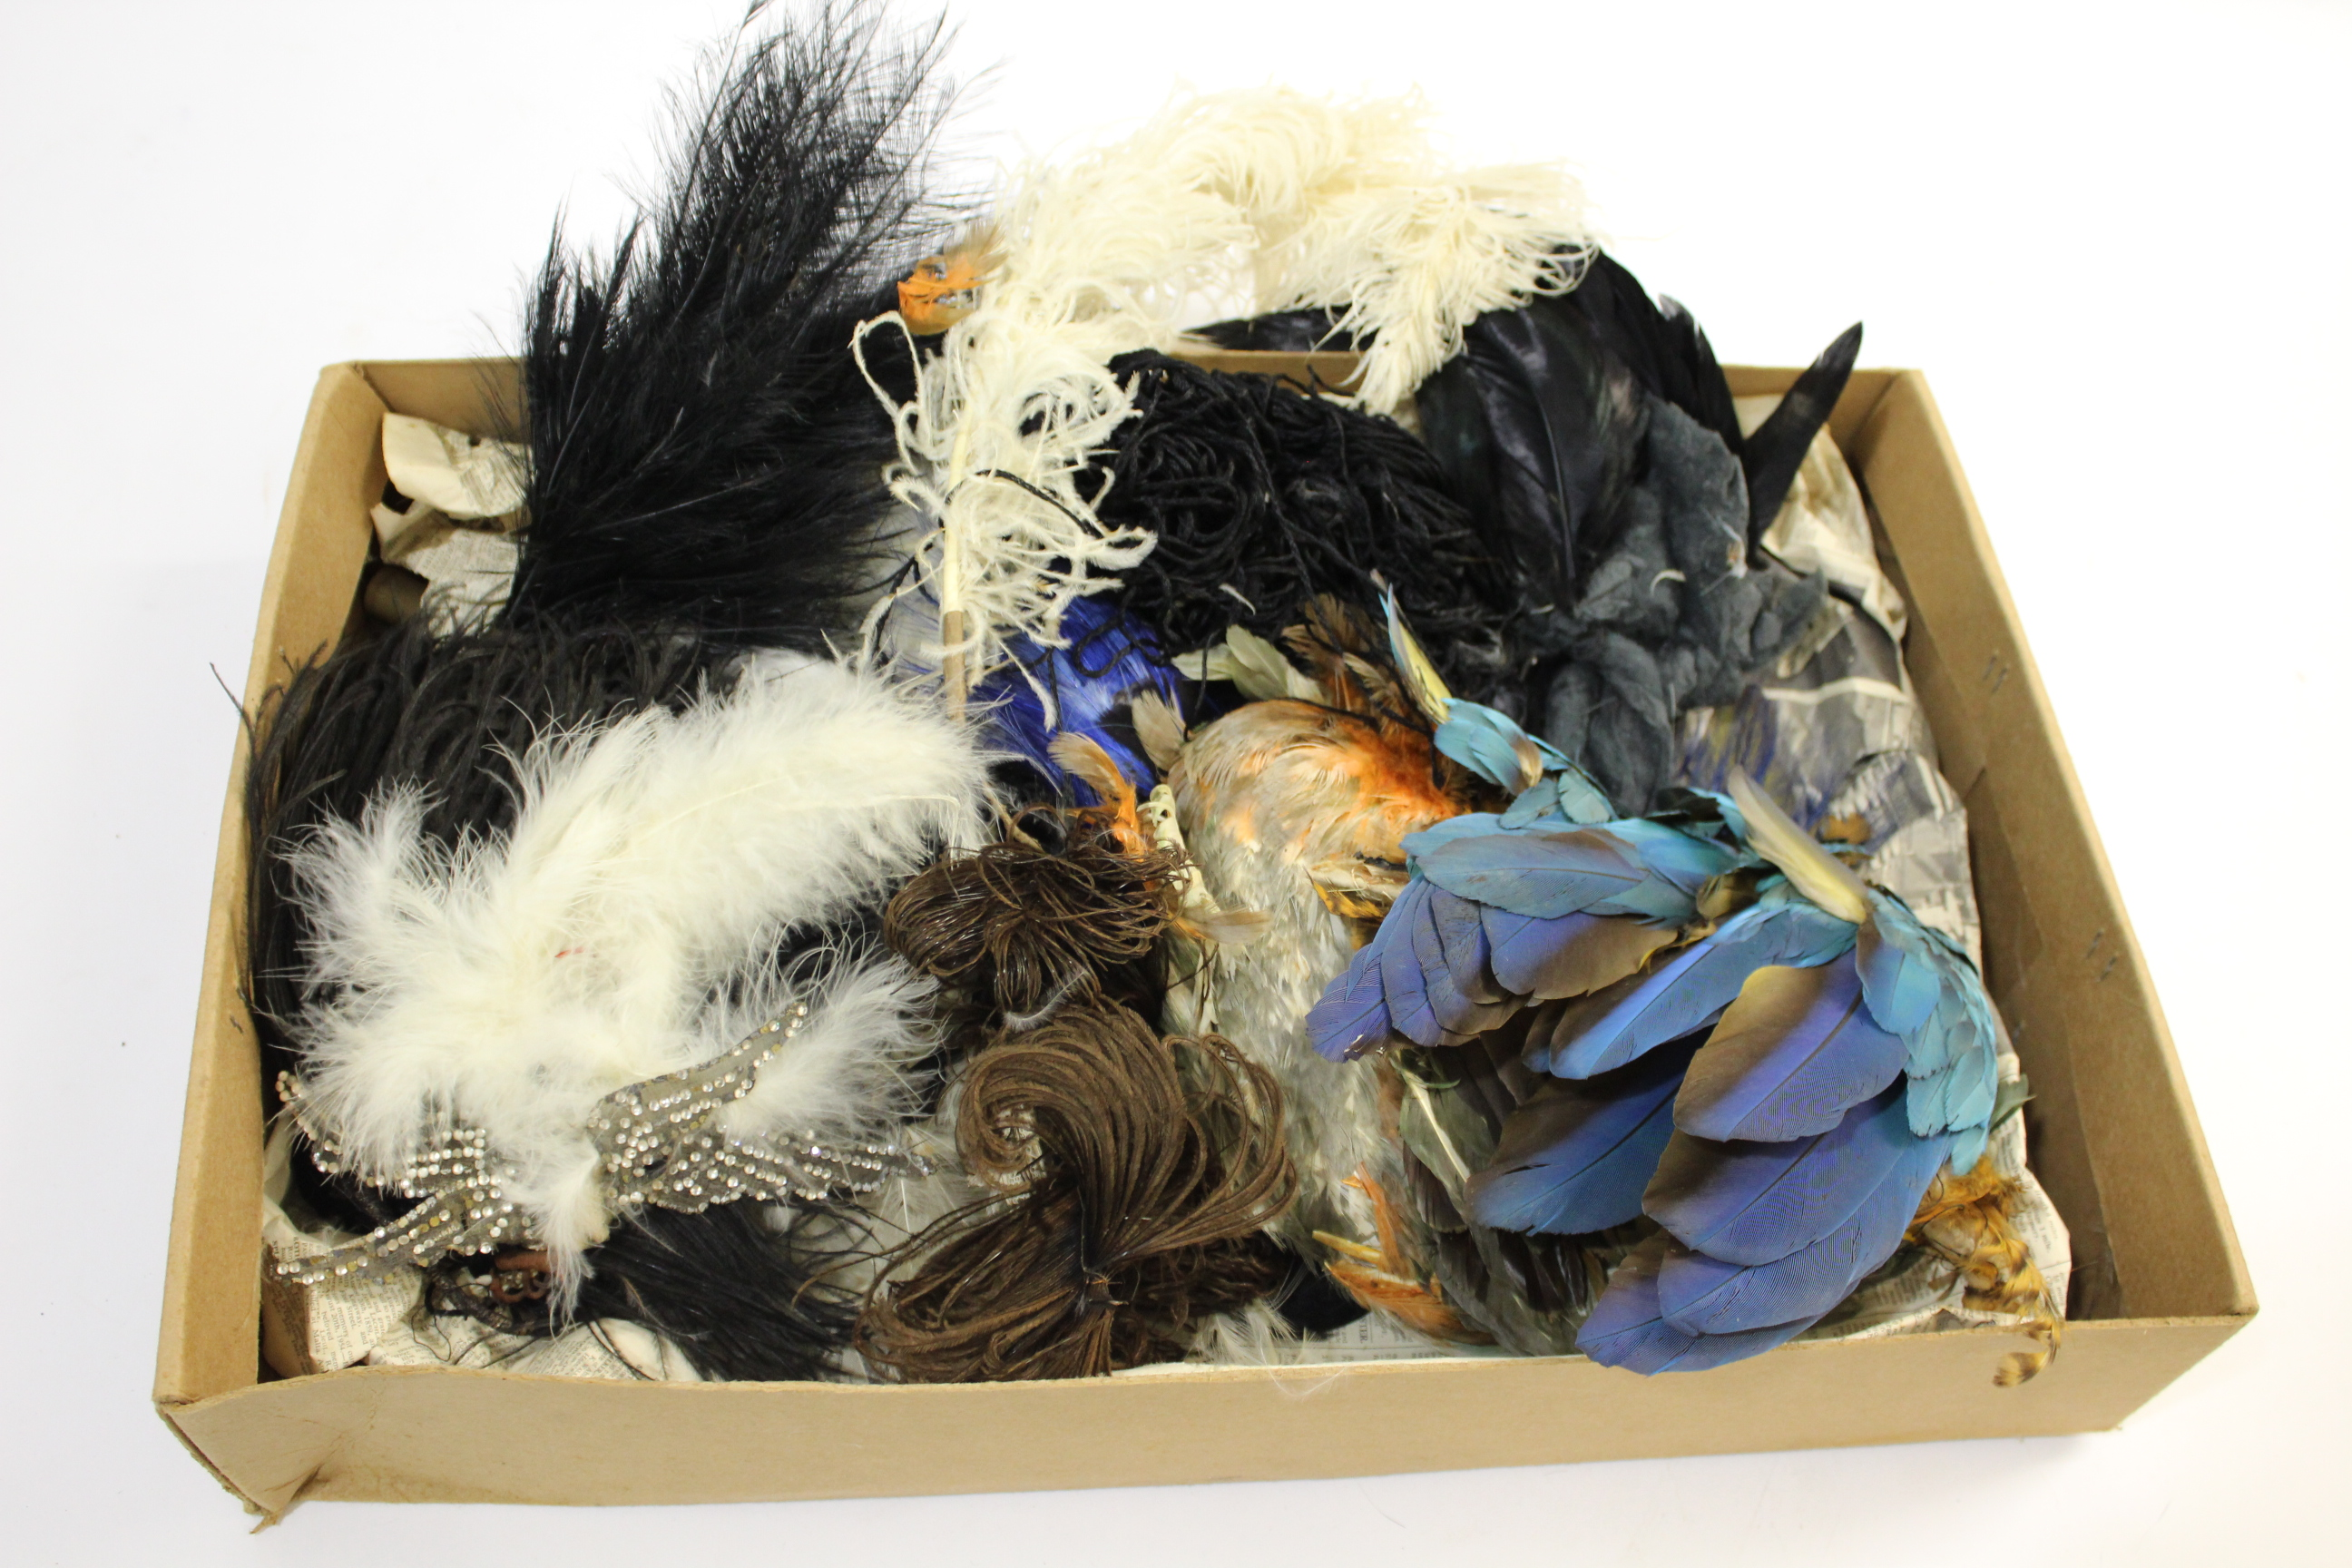 Lot 1897 - VINTAGE MILLINERY FEATHERS & CORSAGE a qty of late 19th and early 20th millinery feathers, and a